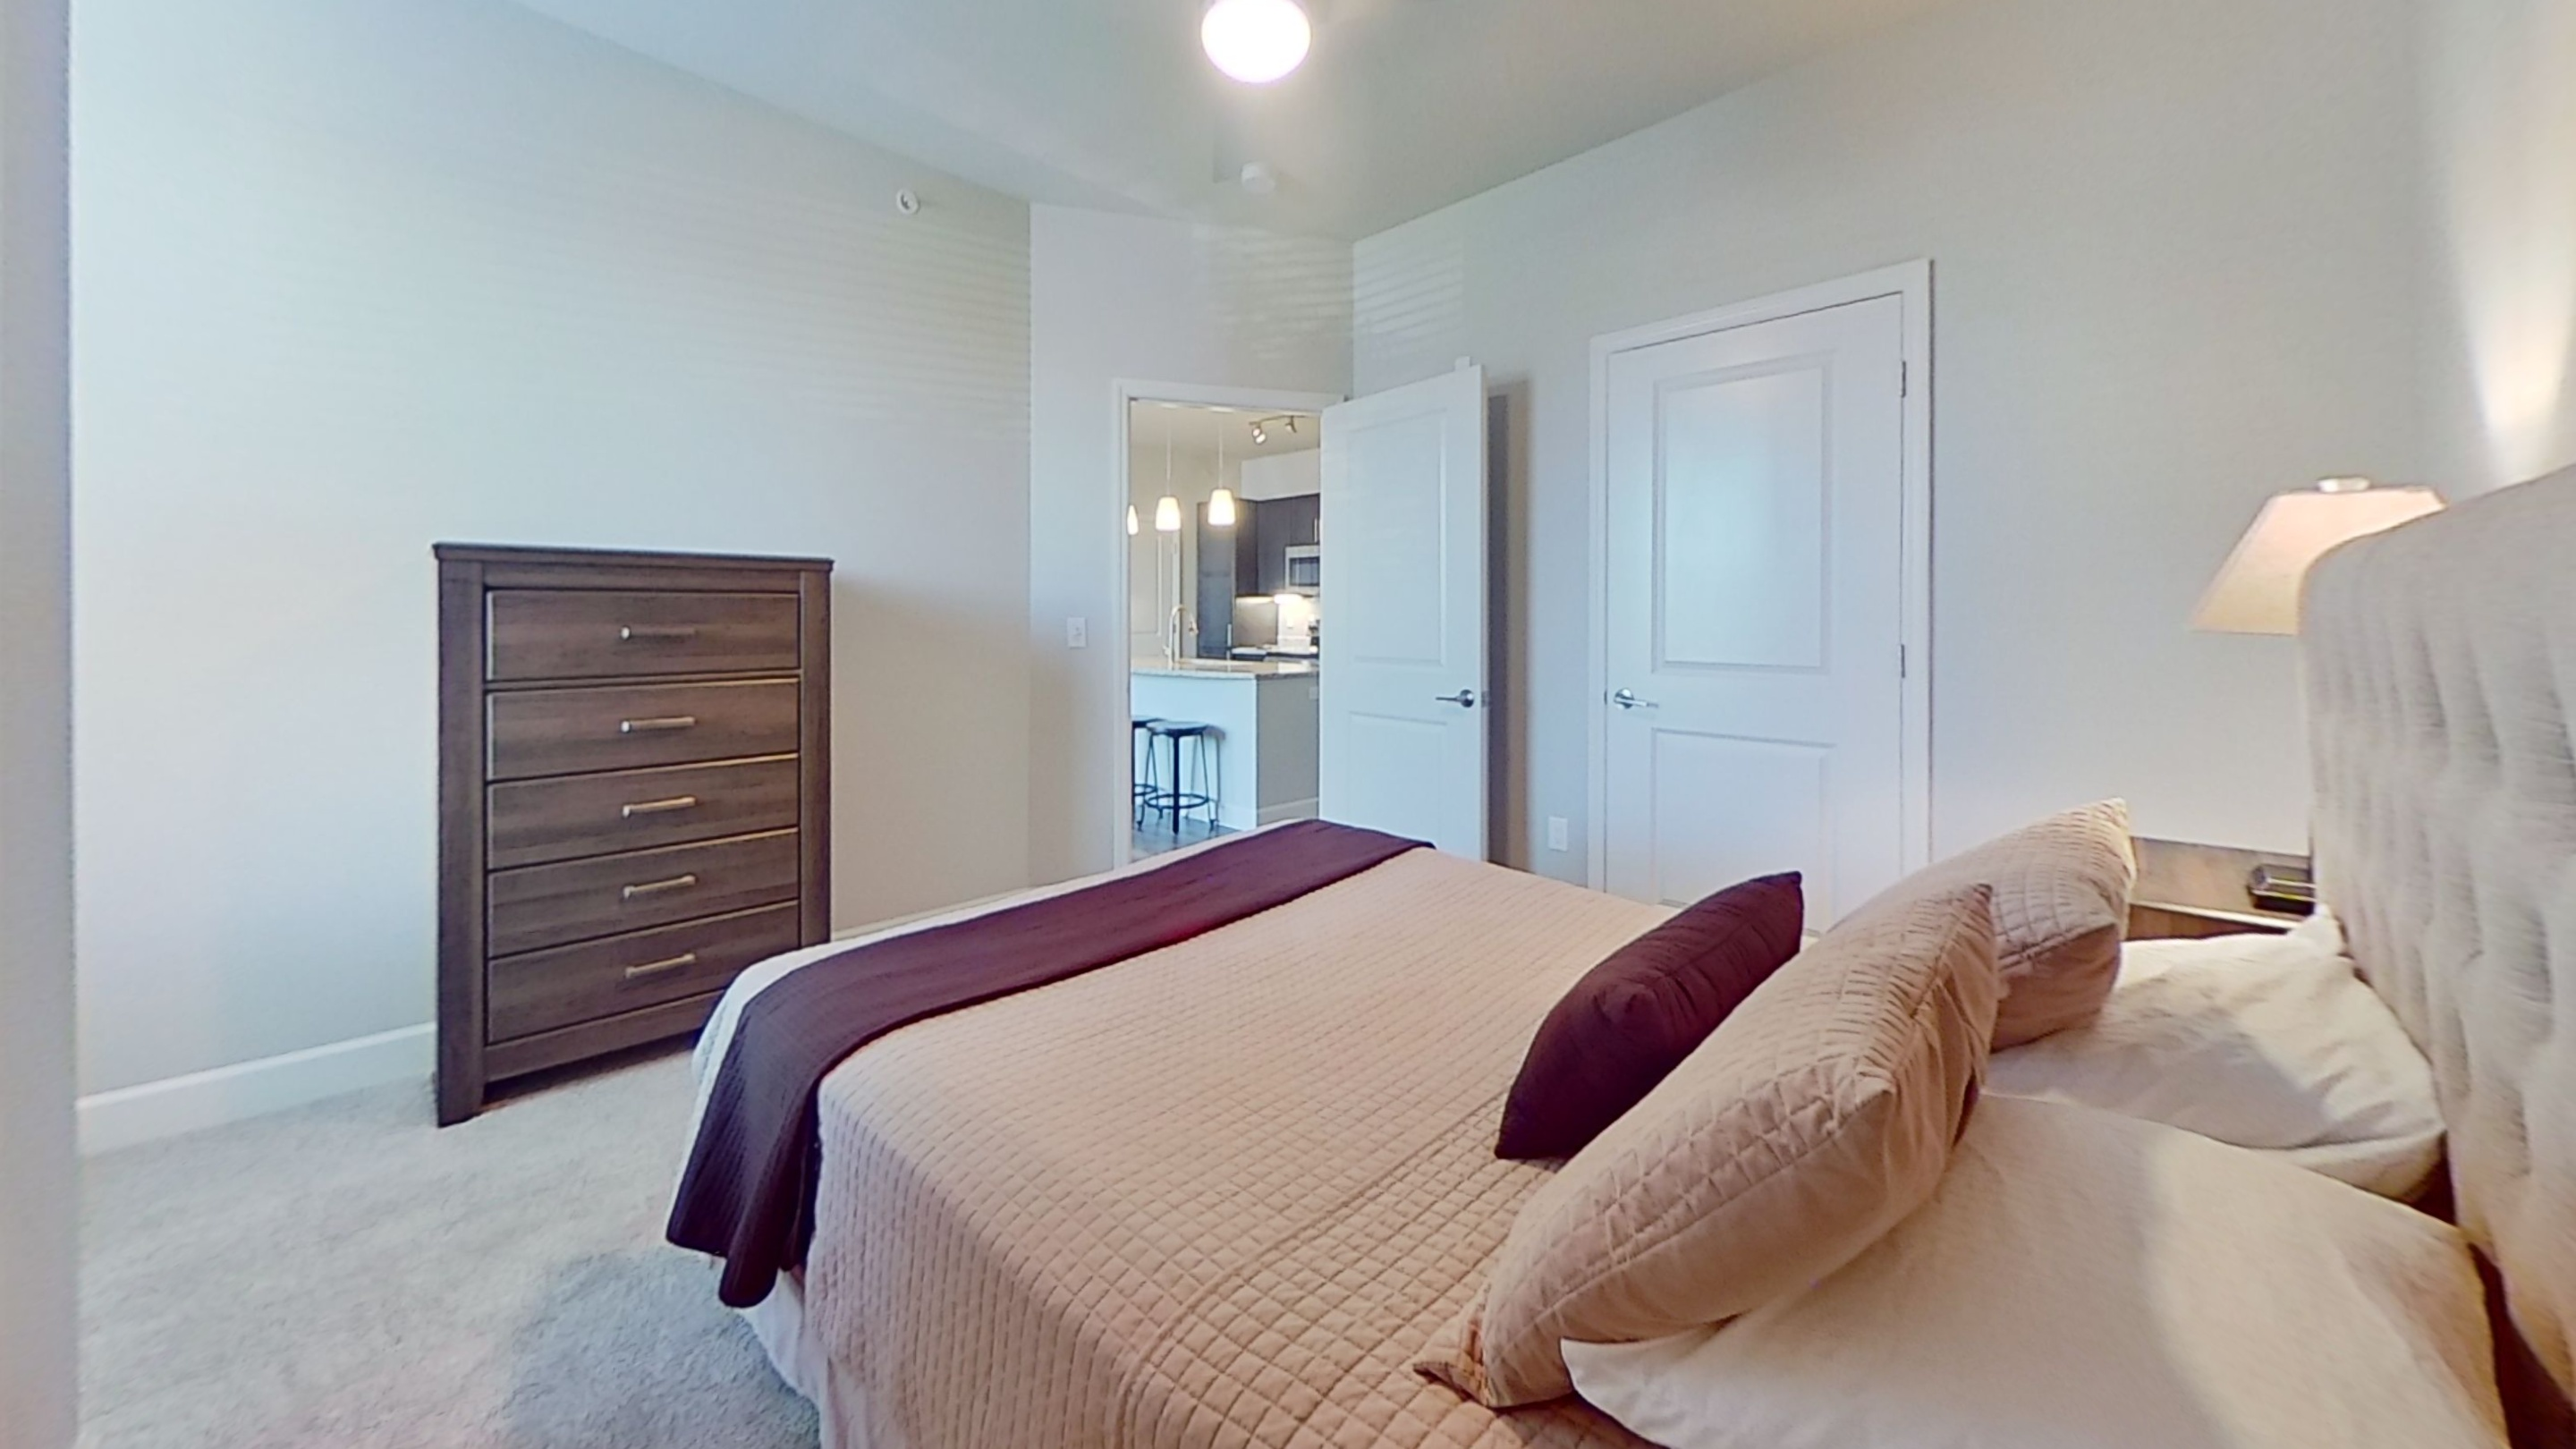 B1 Bedroom at the Vue at Creve Coeur Apartments in Creve Coeur, MO